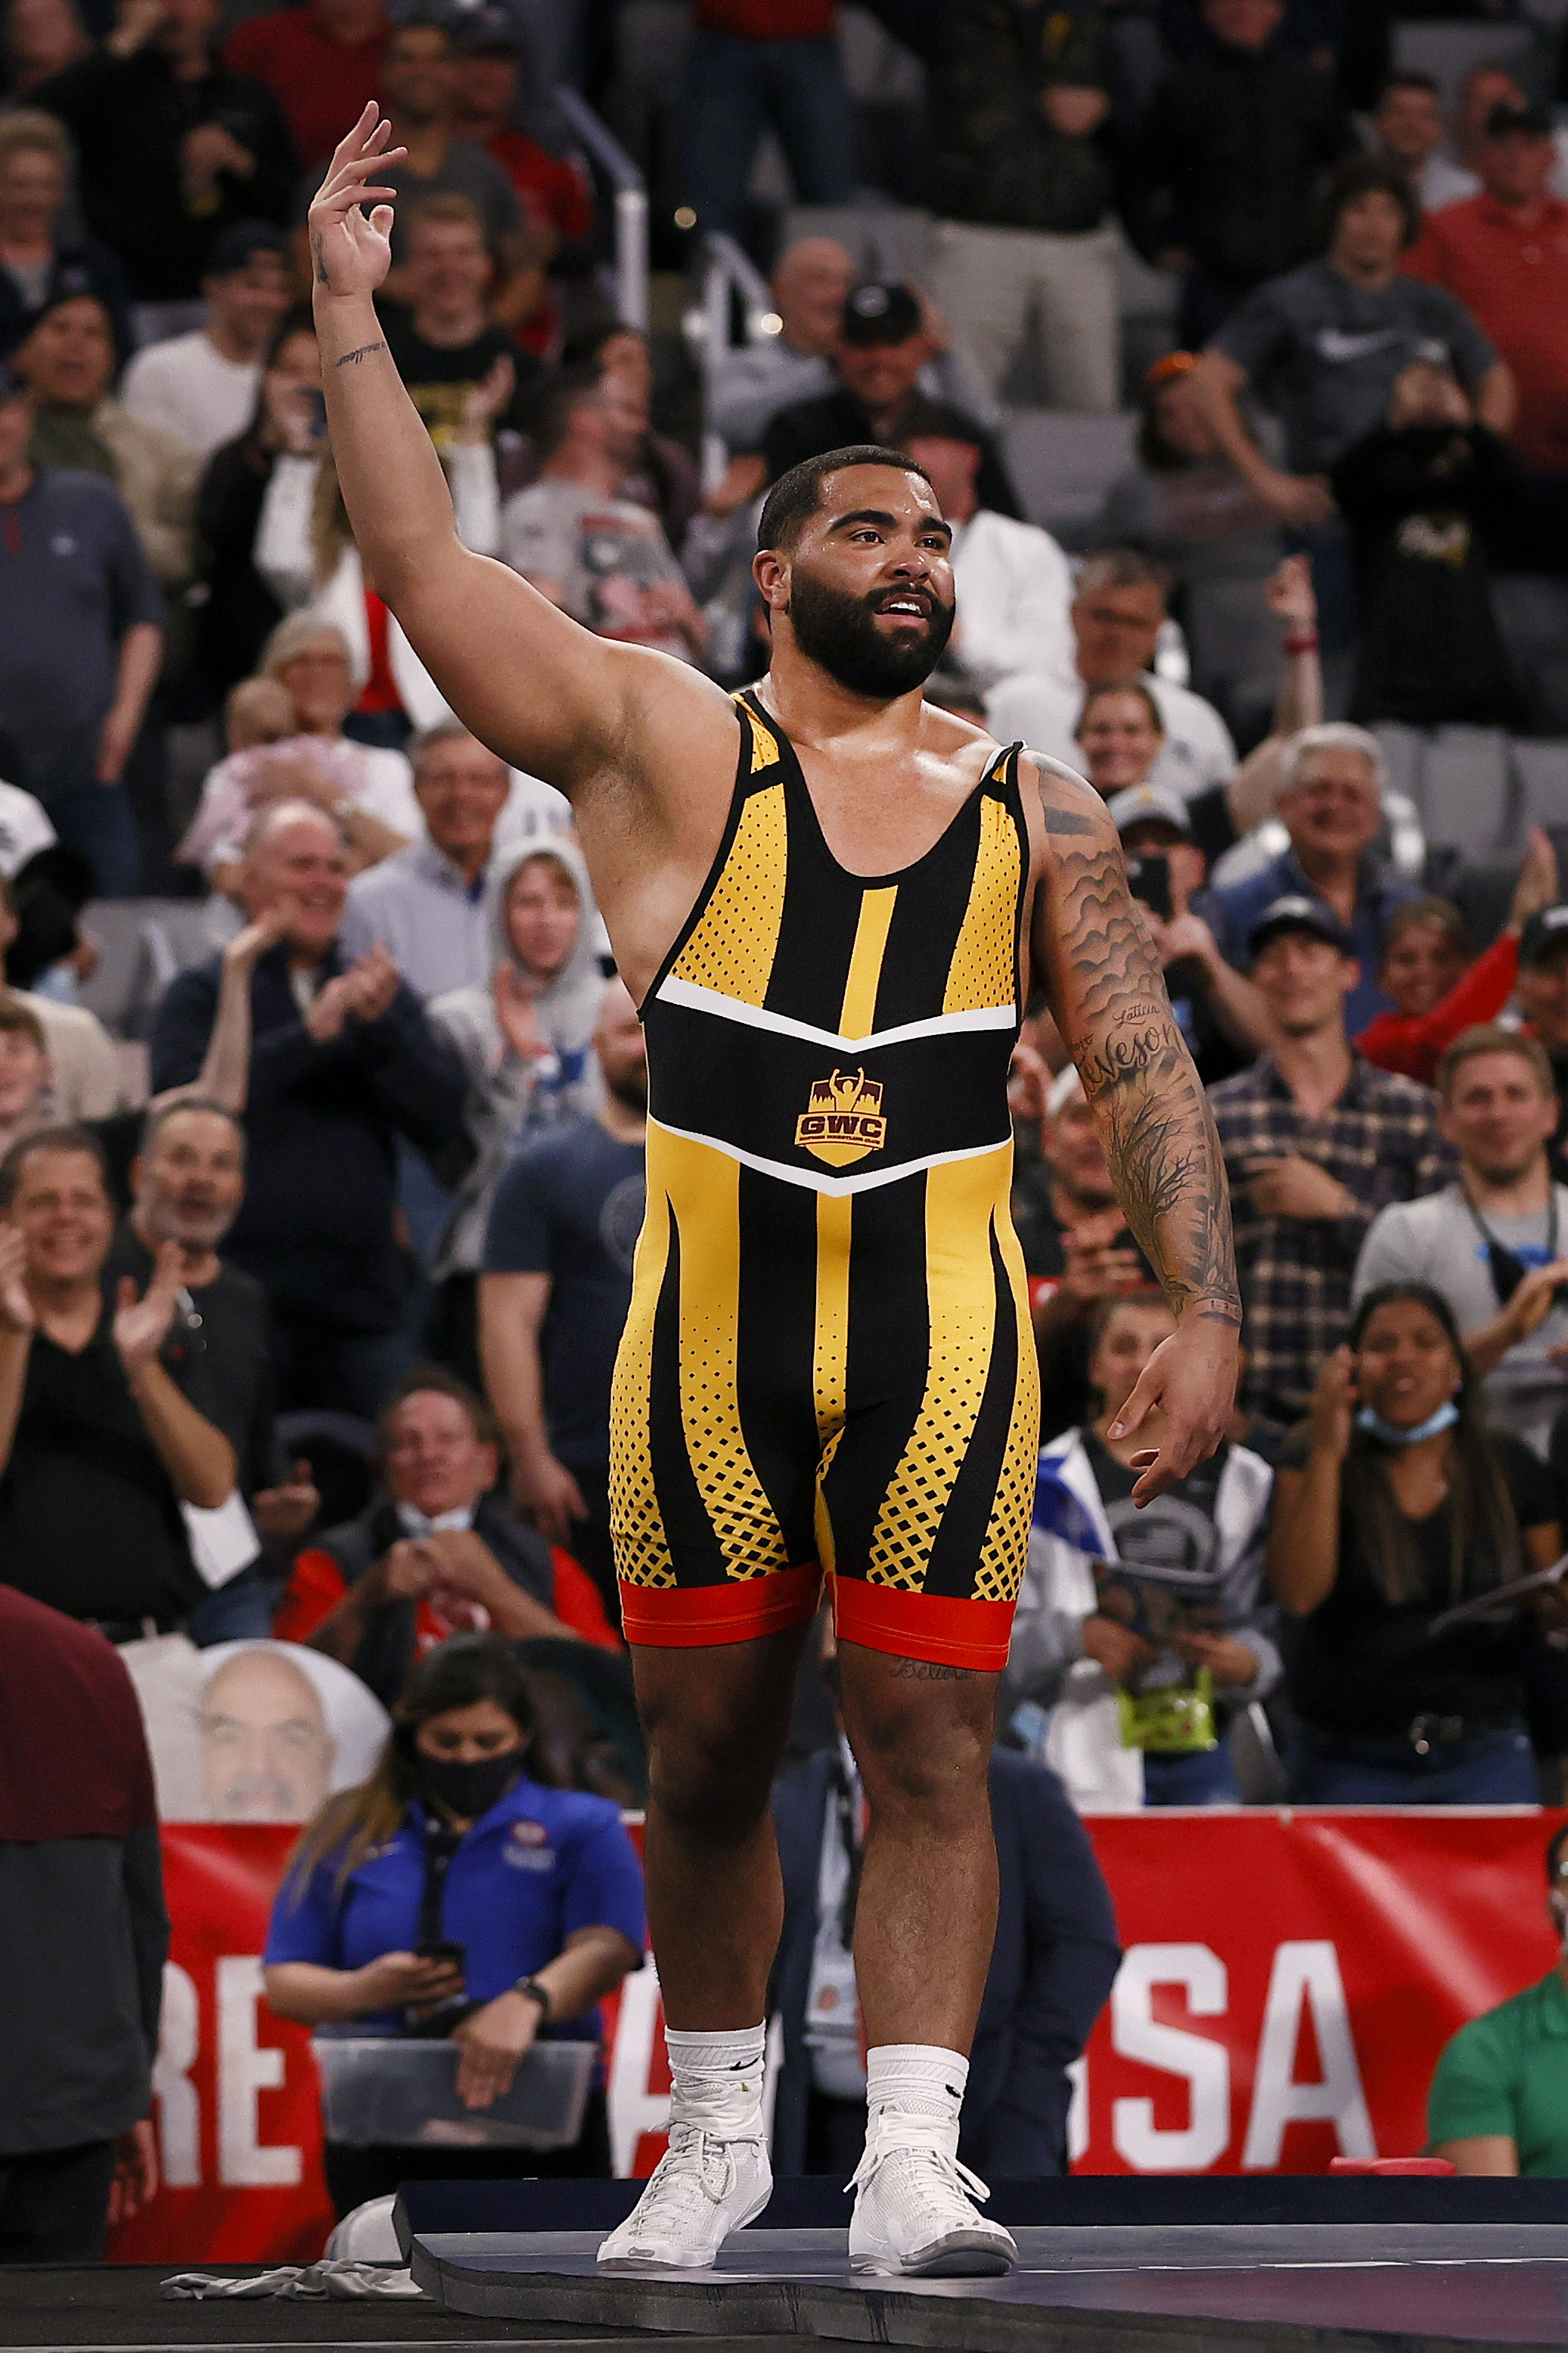 Gable Steveson celebrates a victory at the 2021 Olympic Team Trials.